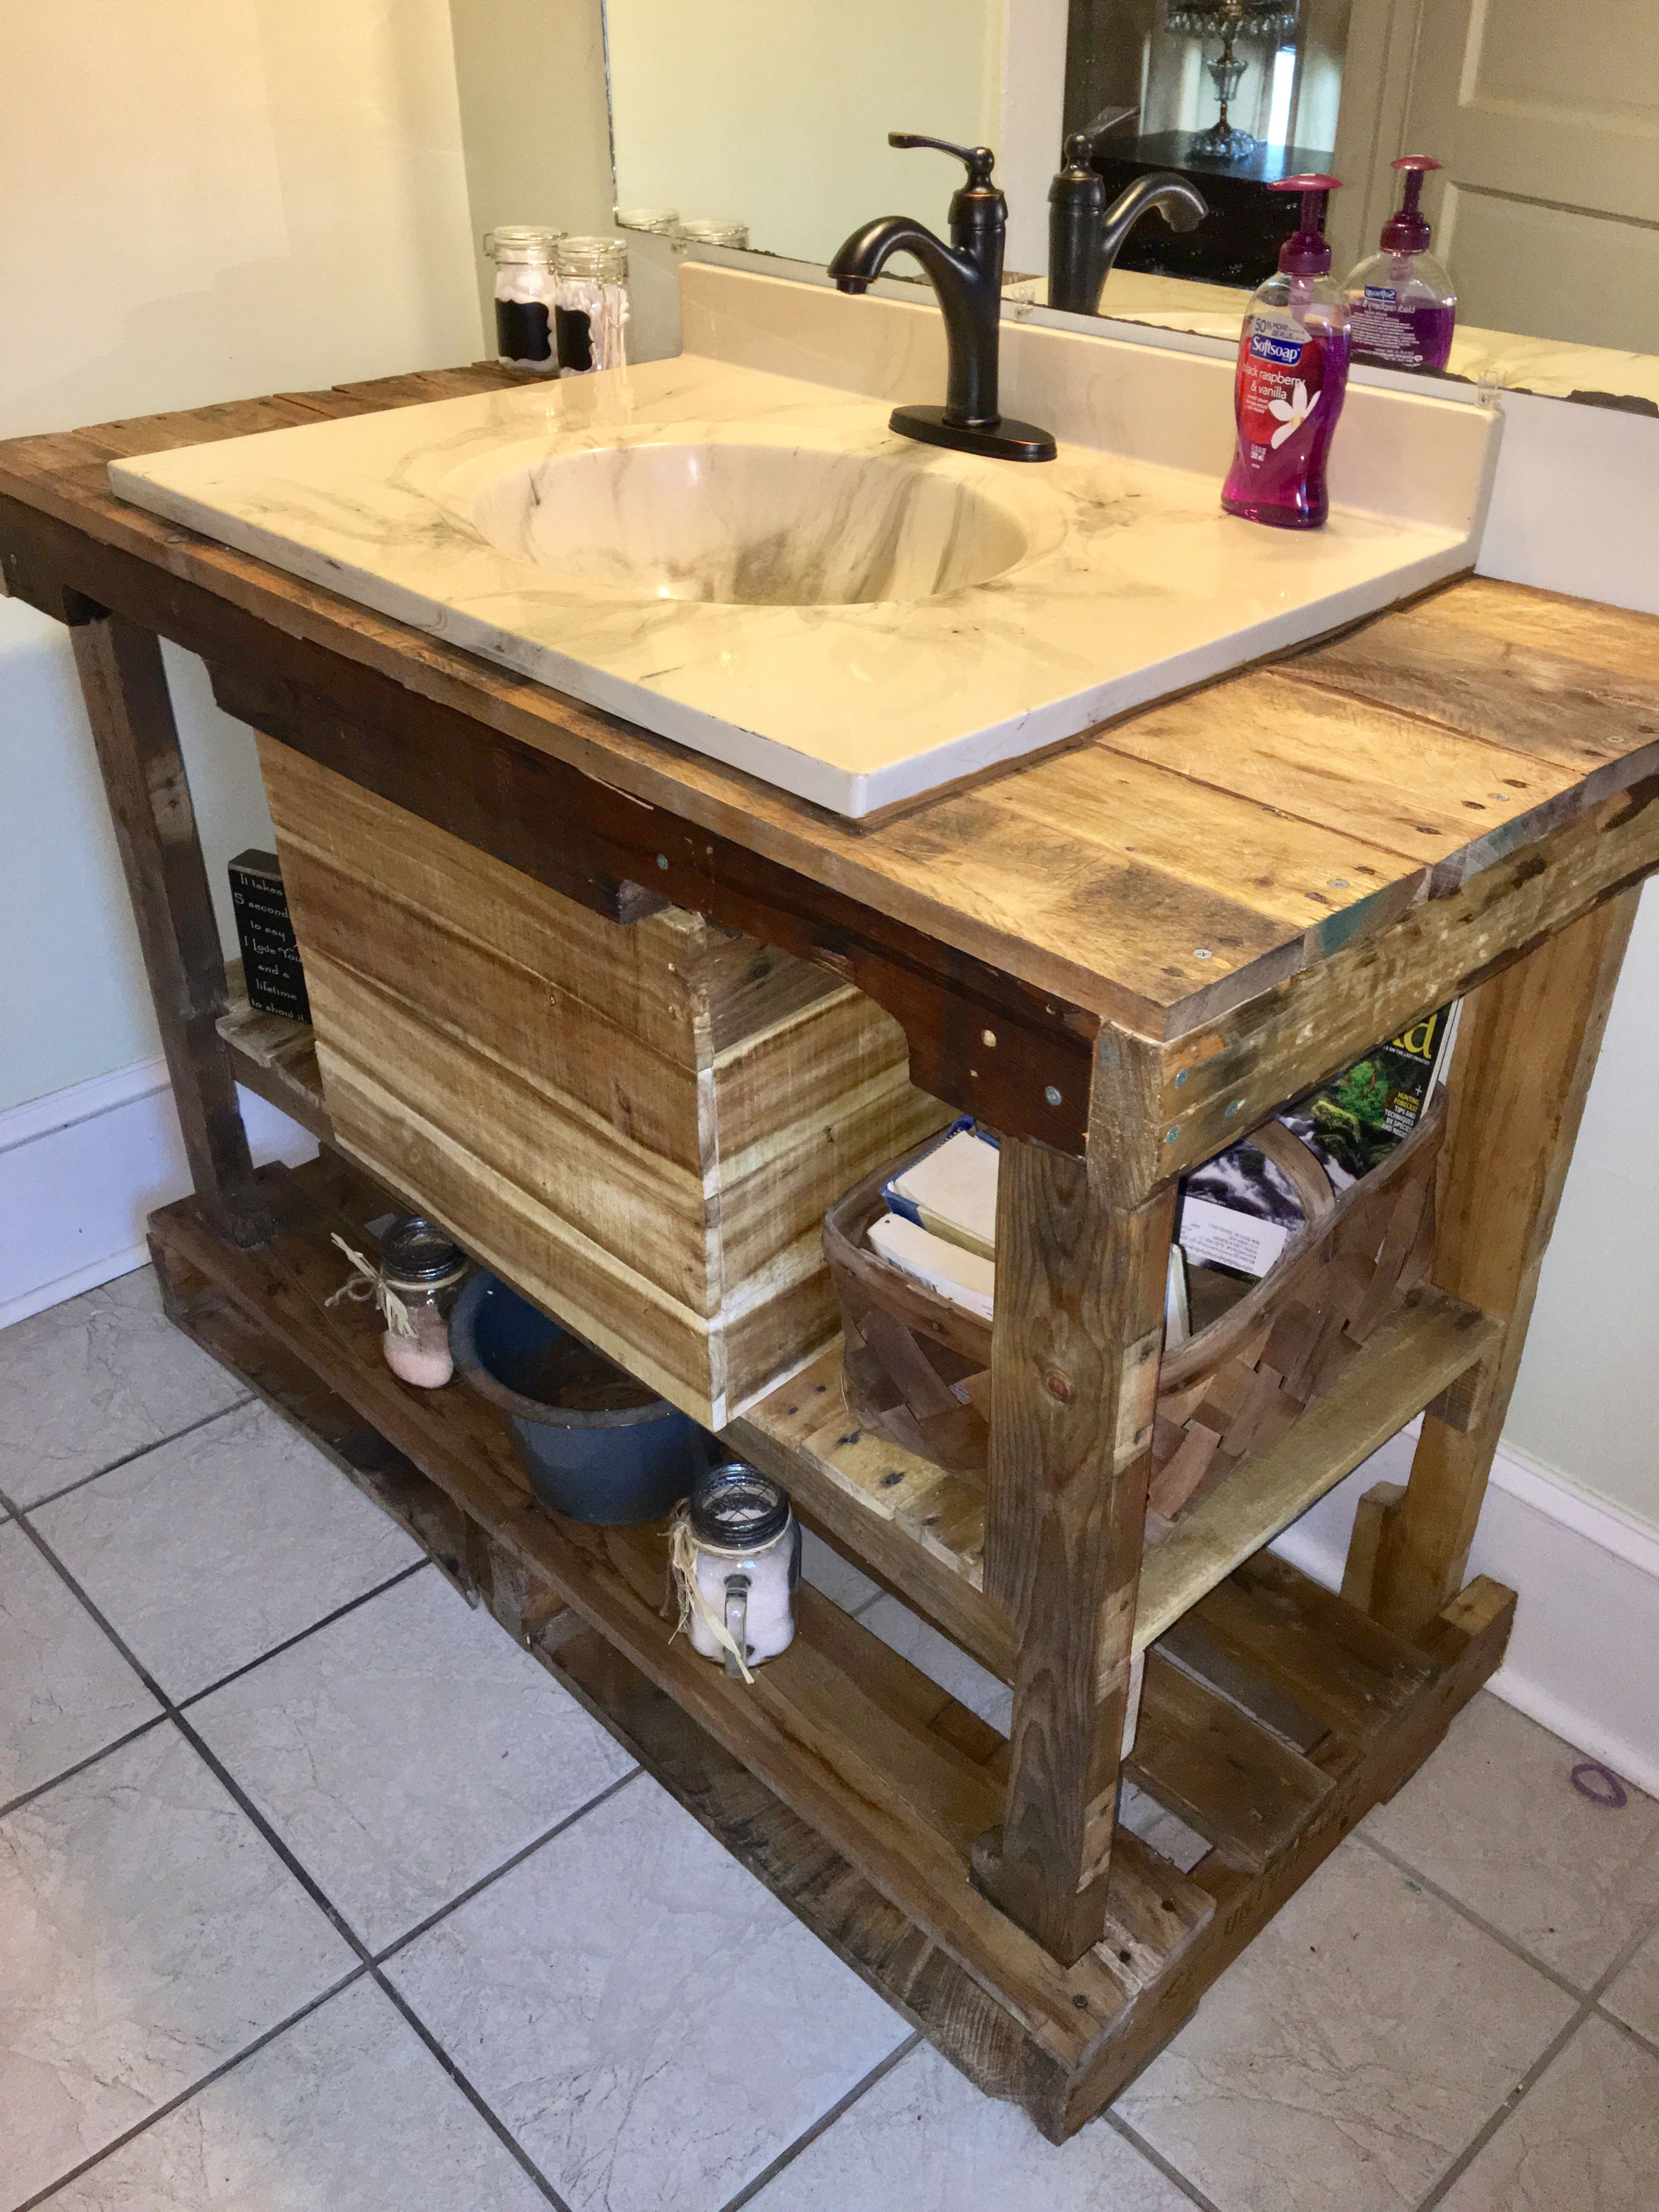 Bathroom Sink My Husband Made Out Of Pallets Rustic Pallet Bathroom Rustic Bathroom Vanities Rustic Bathroom Sinks